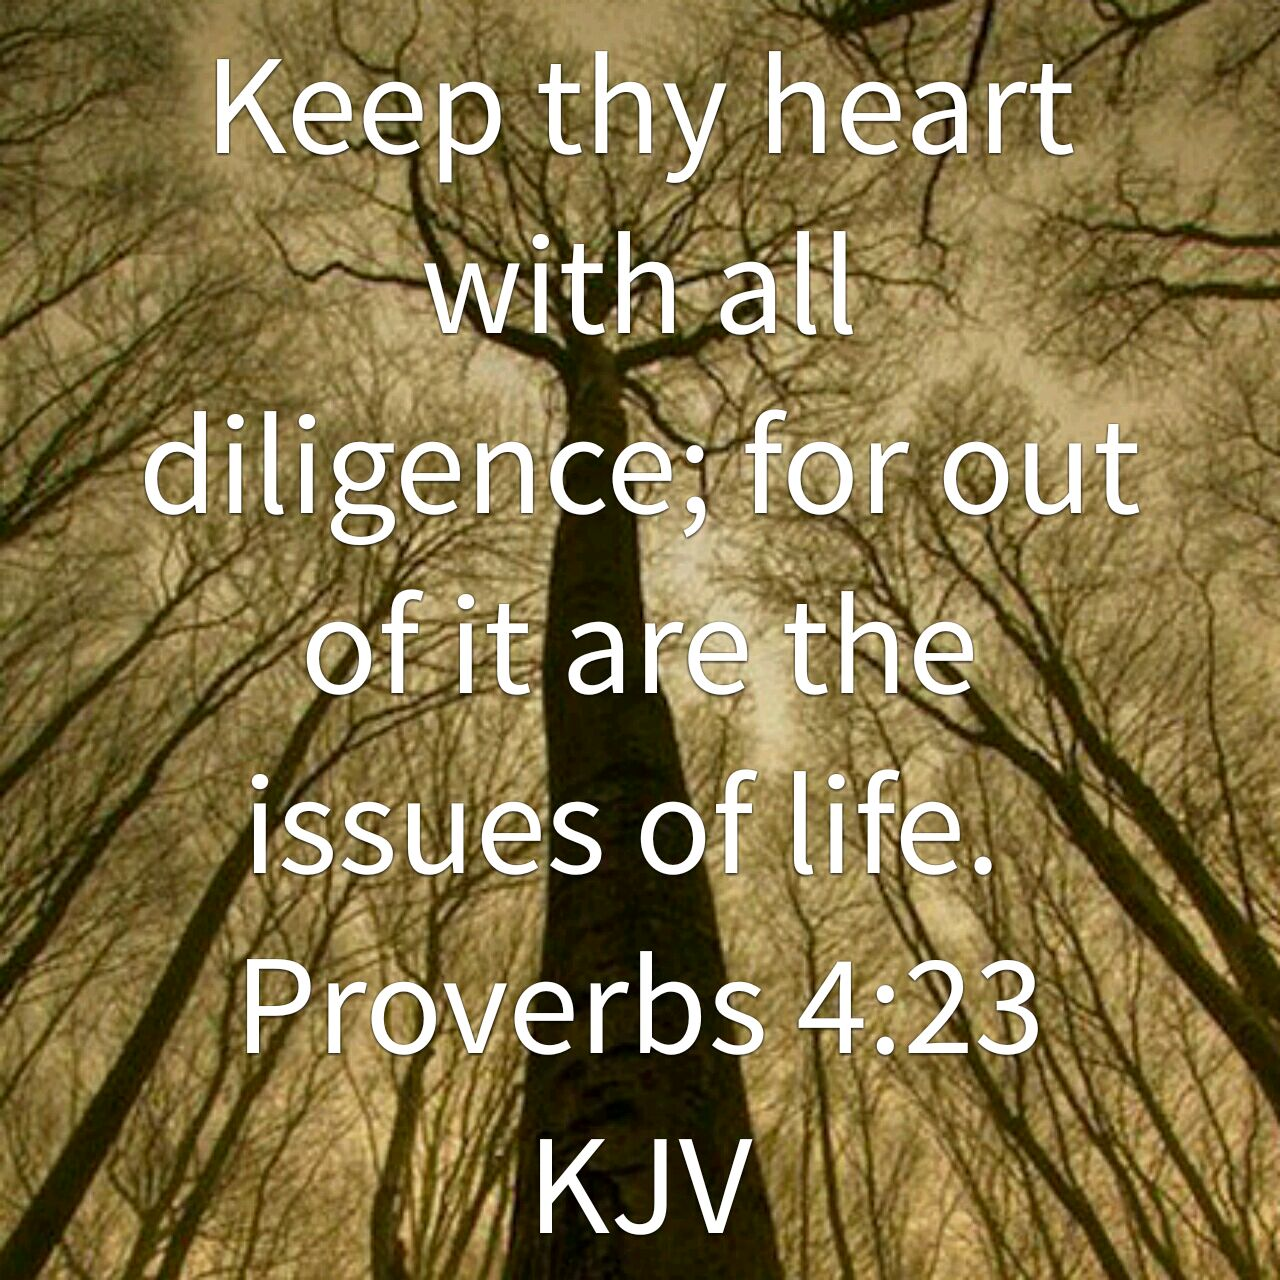 Keep thy heart with all diligence, for out of it are the